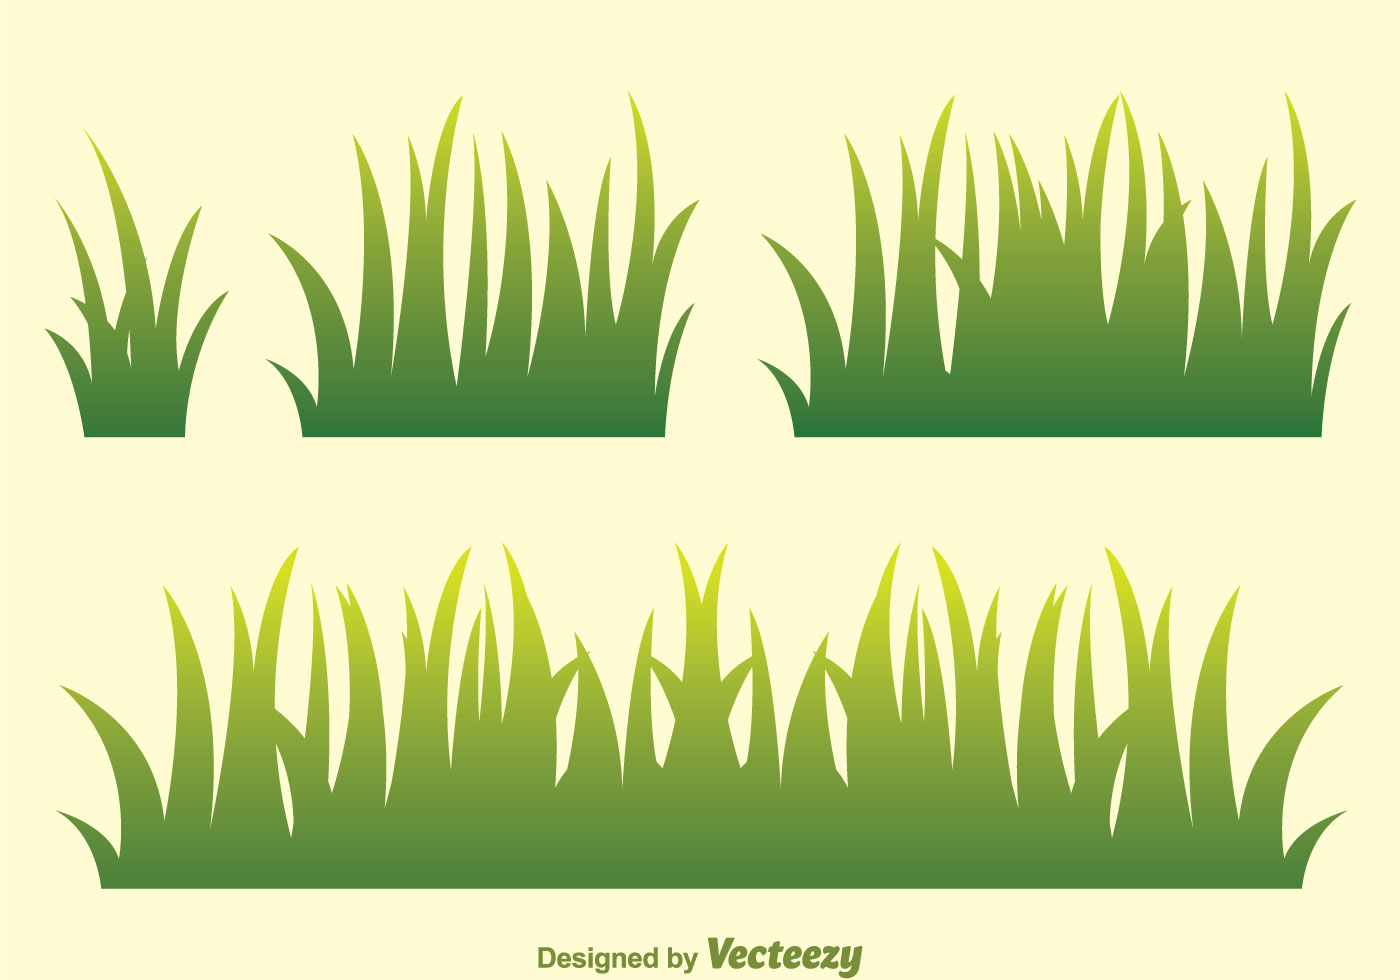 grass vector download free vector art  stock graphics lawn mower clipart side view lawn mower clipart images